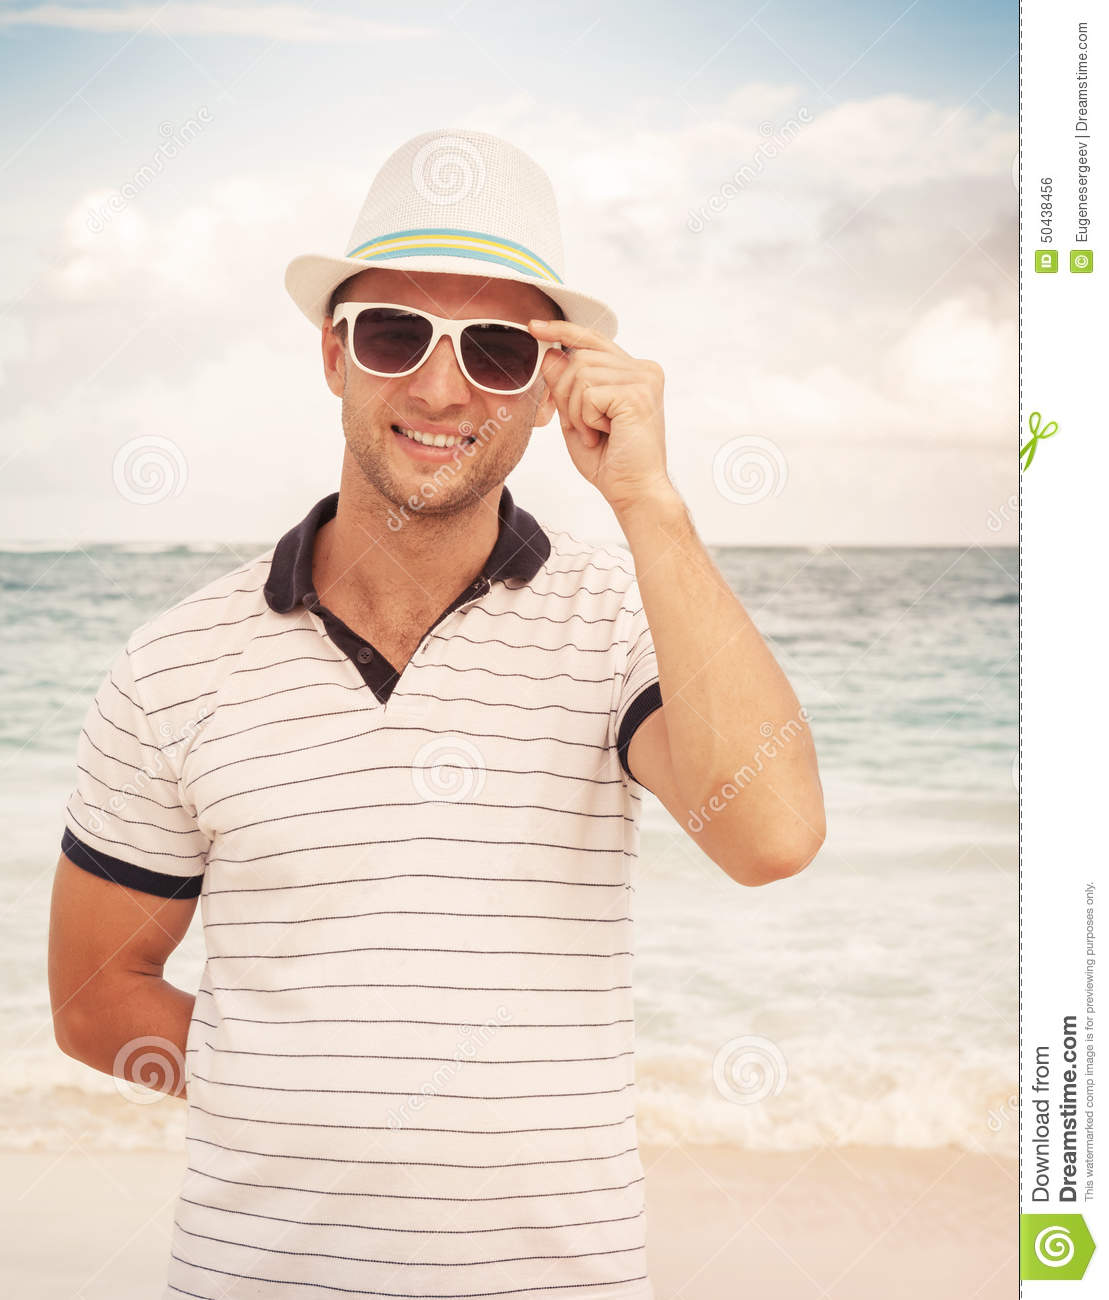 Man in hat and sunglasses standing on the ocean coast